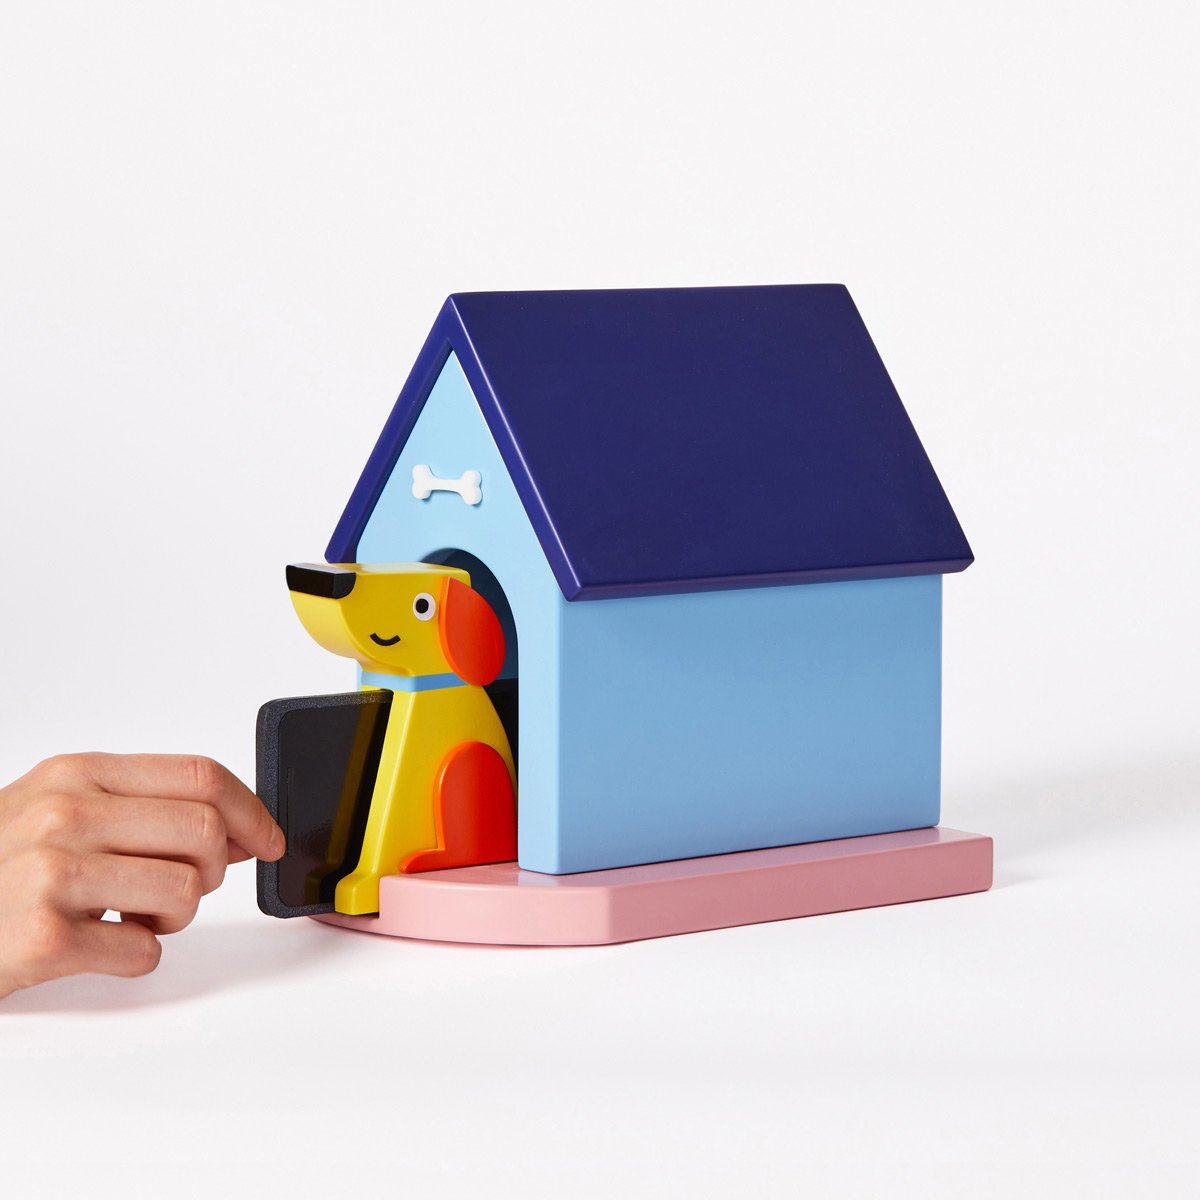 Microsoft mobile phone doghouse